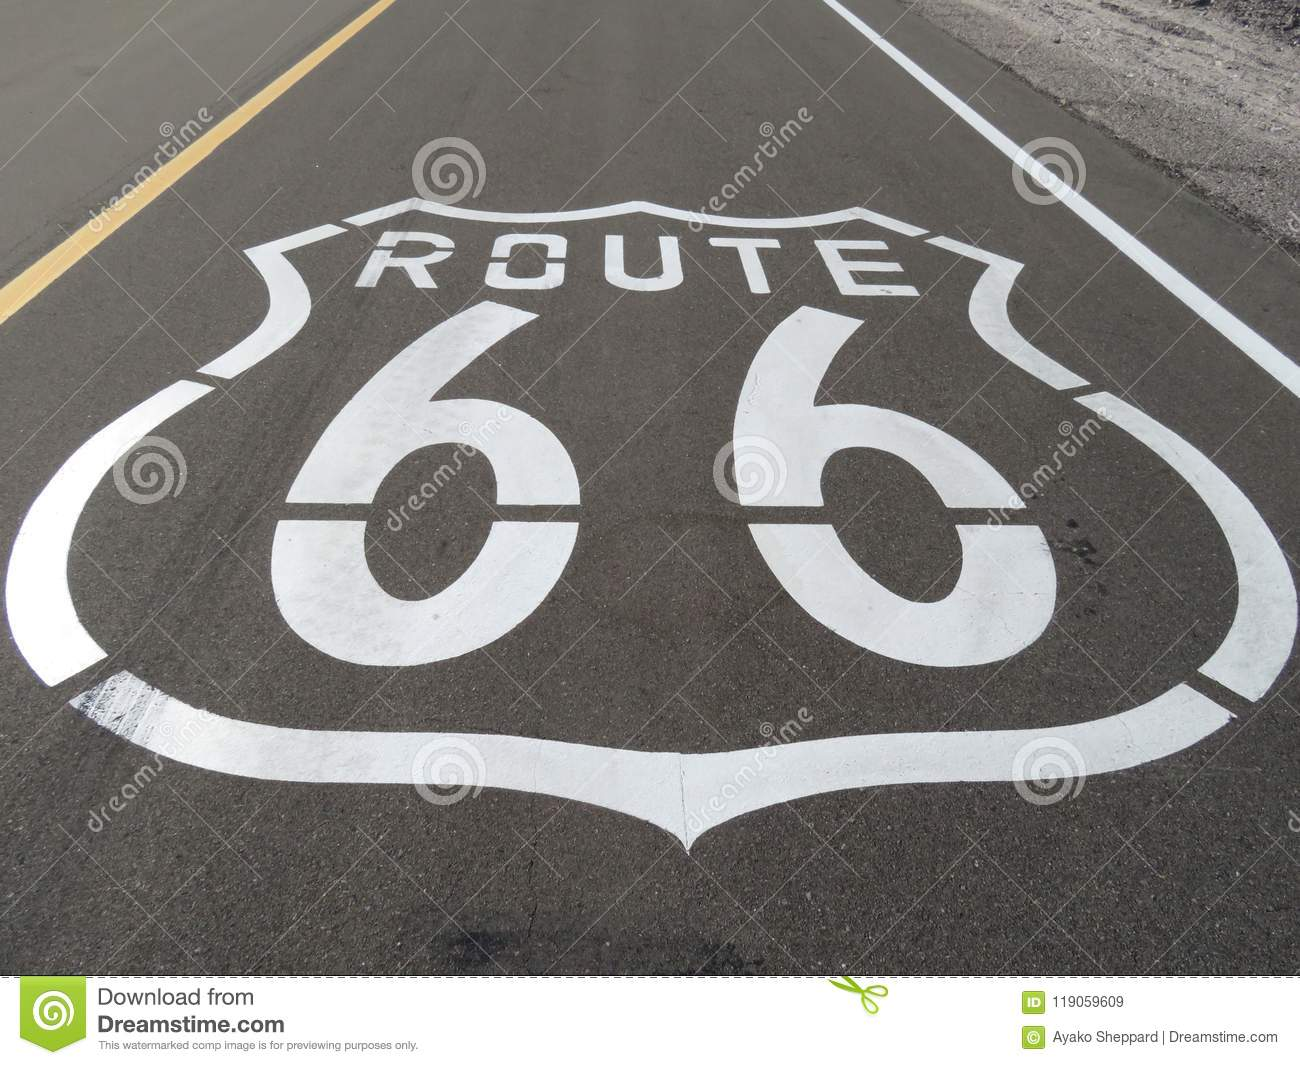 Route 66 Logo Printed on the Mother Road in California